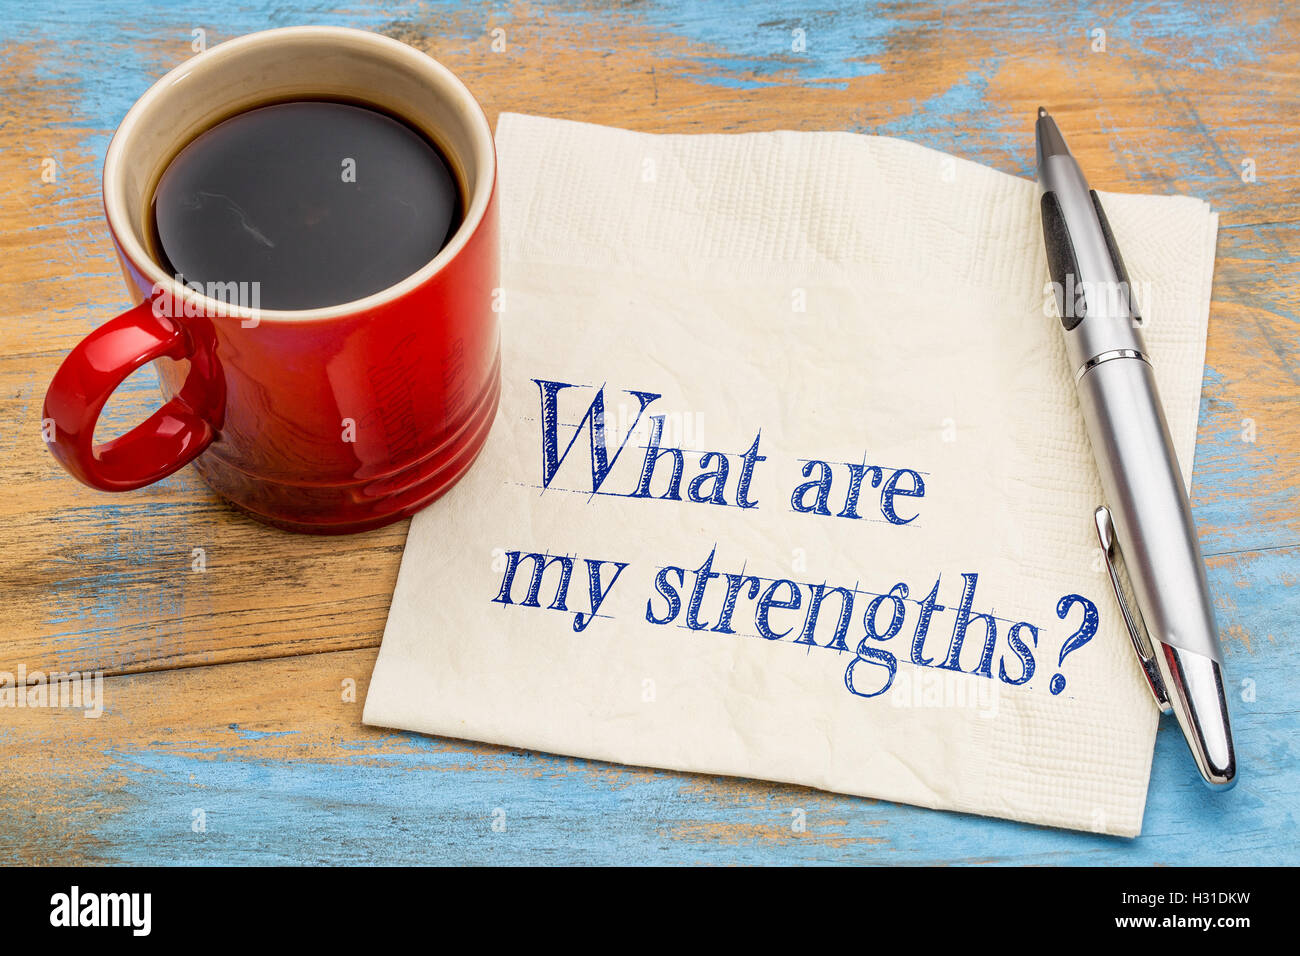 what are my strengths question - handwriting on a napkin with a cup of coffee - Stock Image